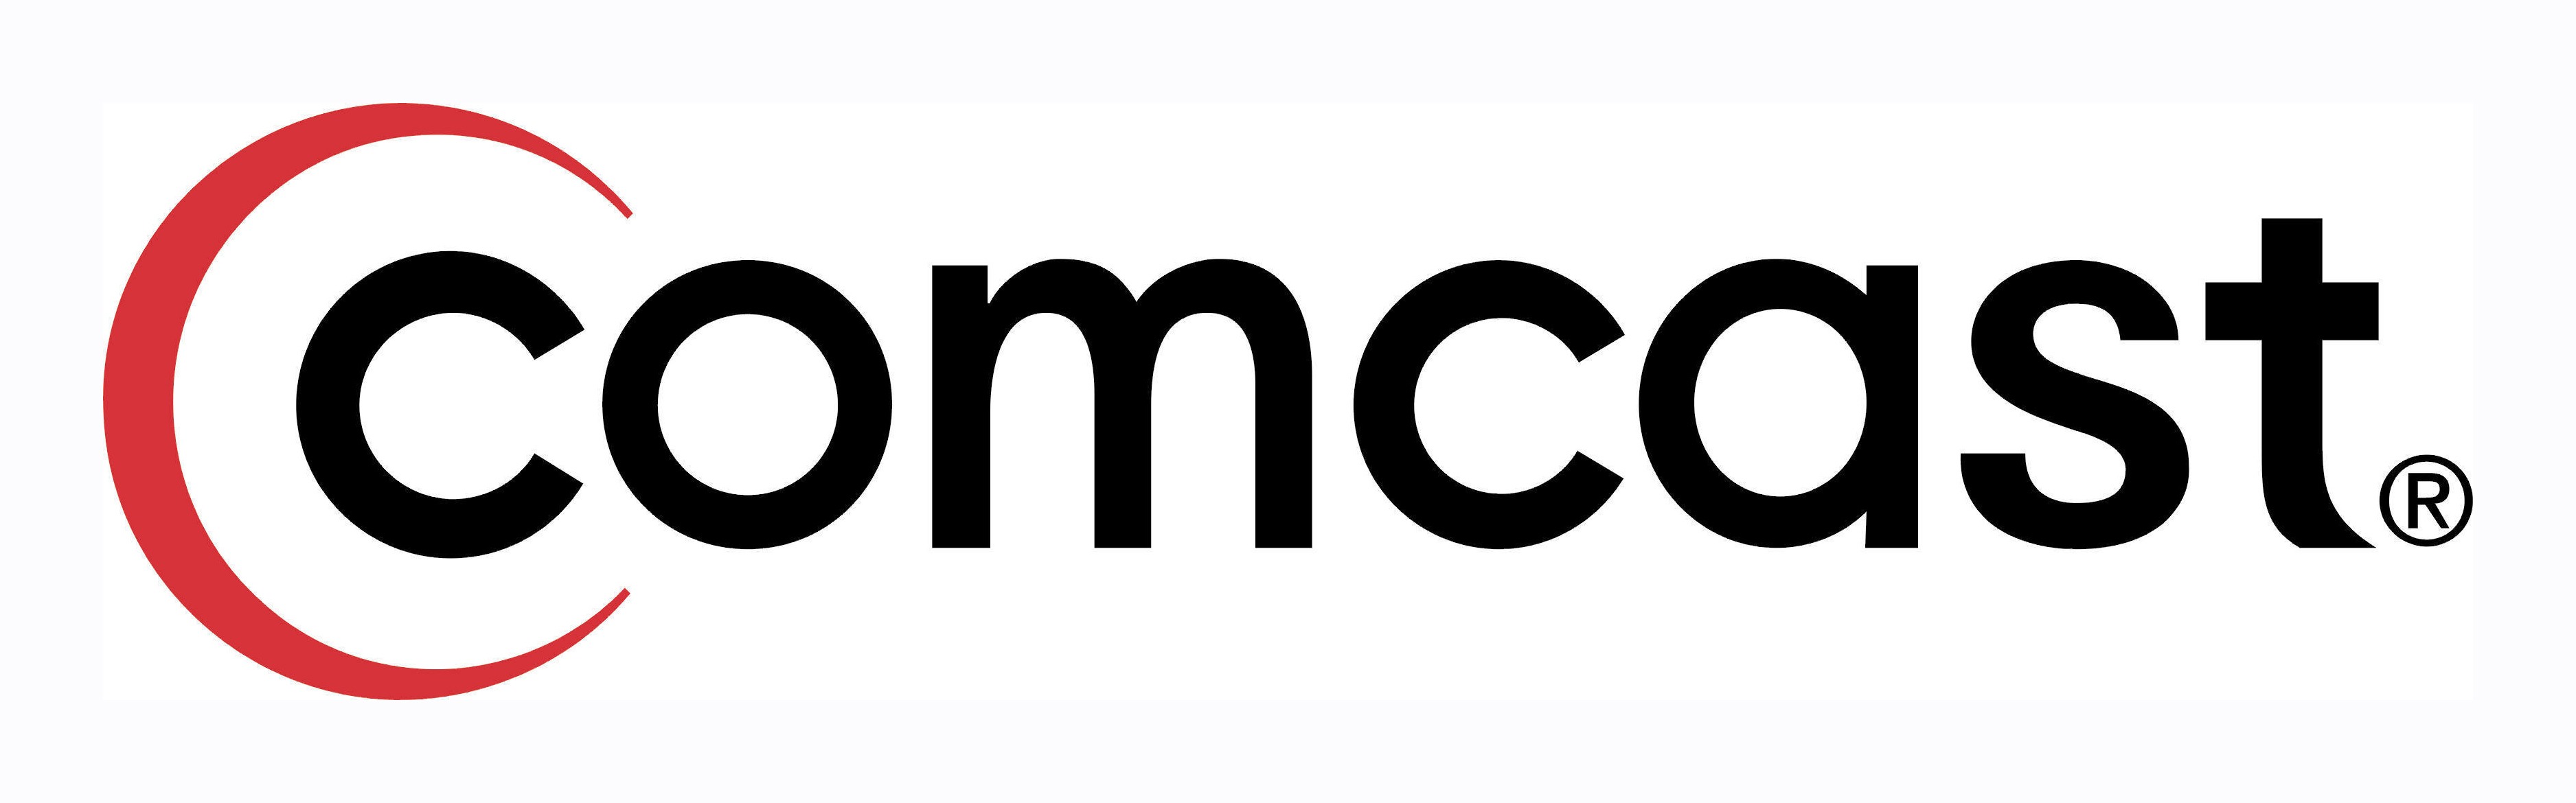 Does Comcast Offer HIPAA Compliant Email? – Paubox